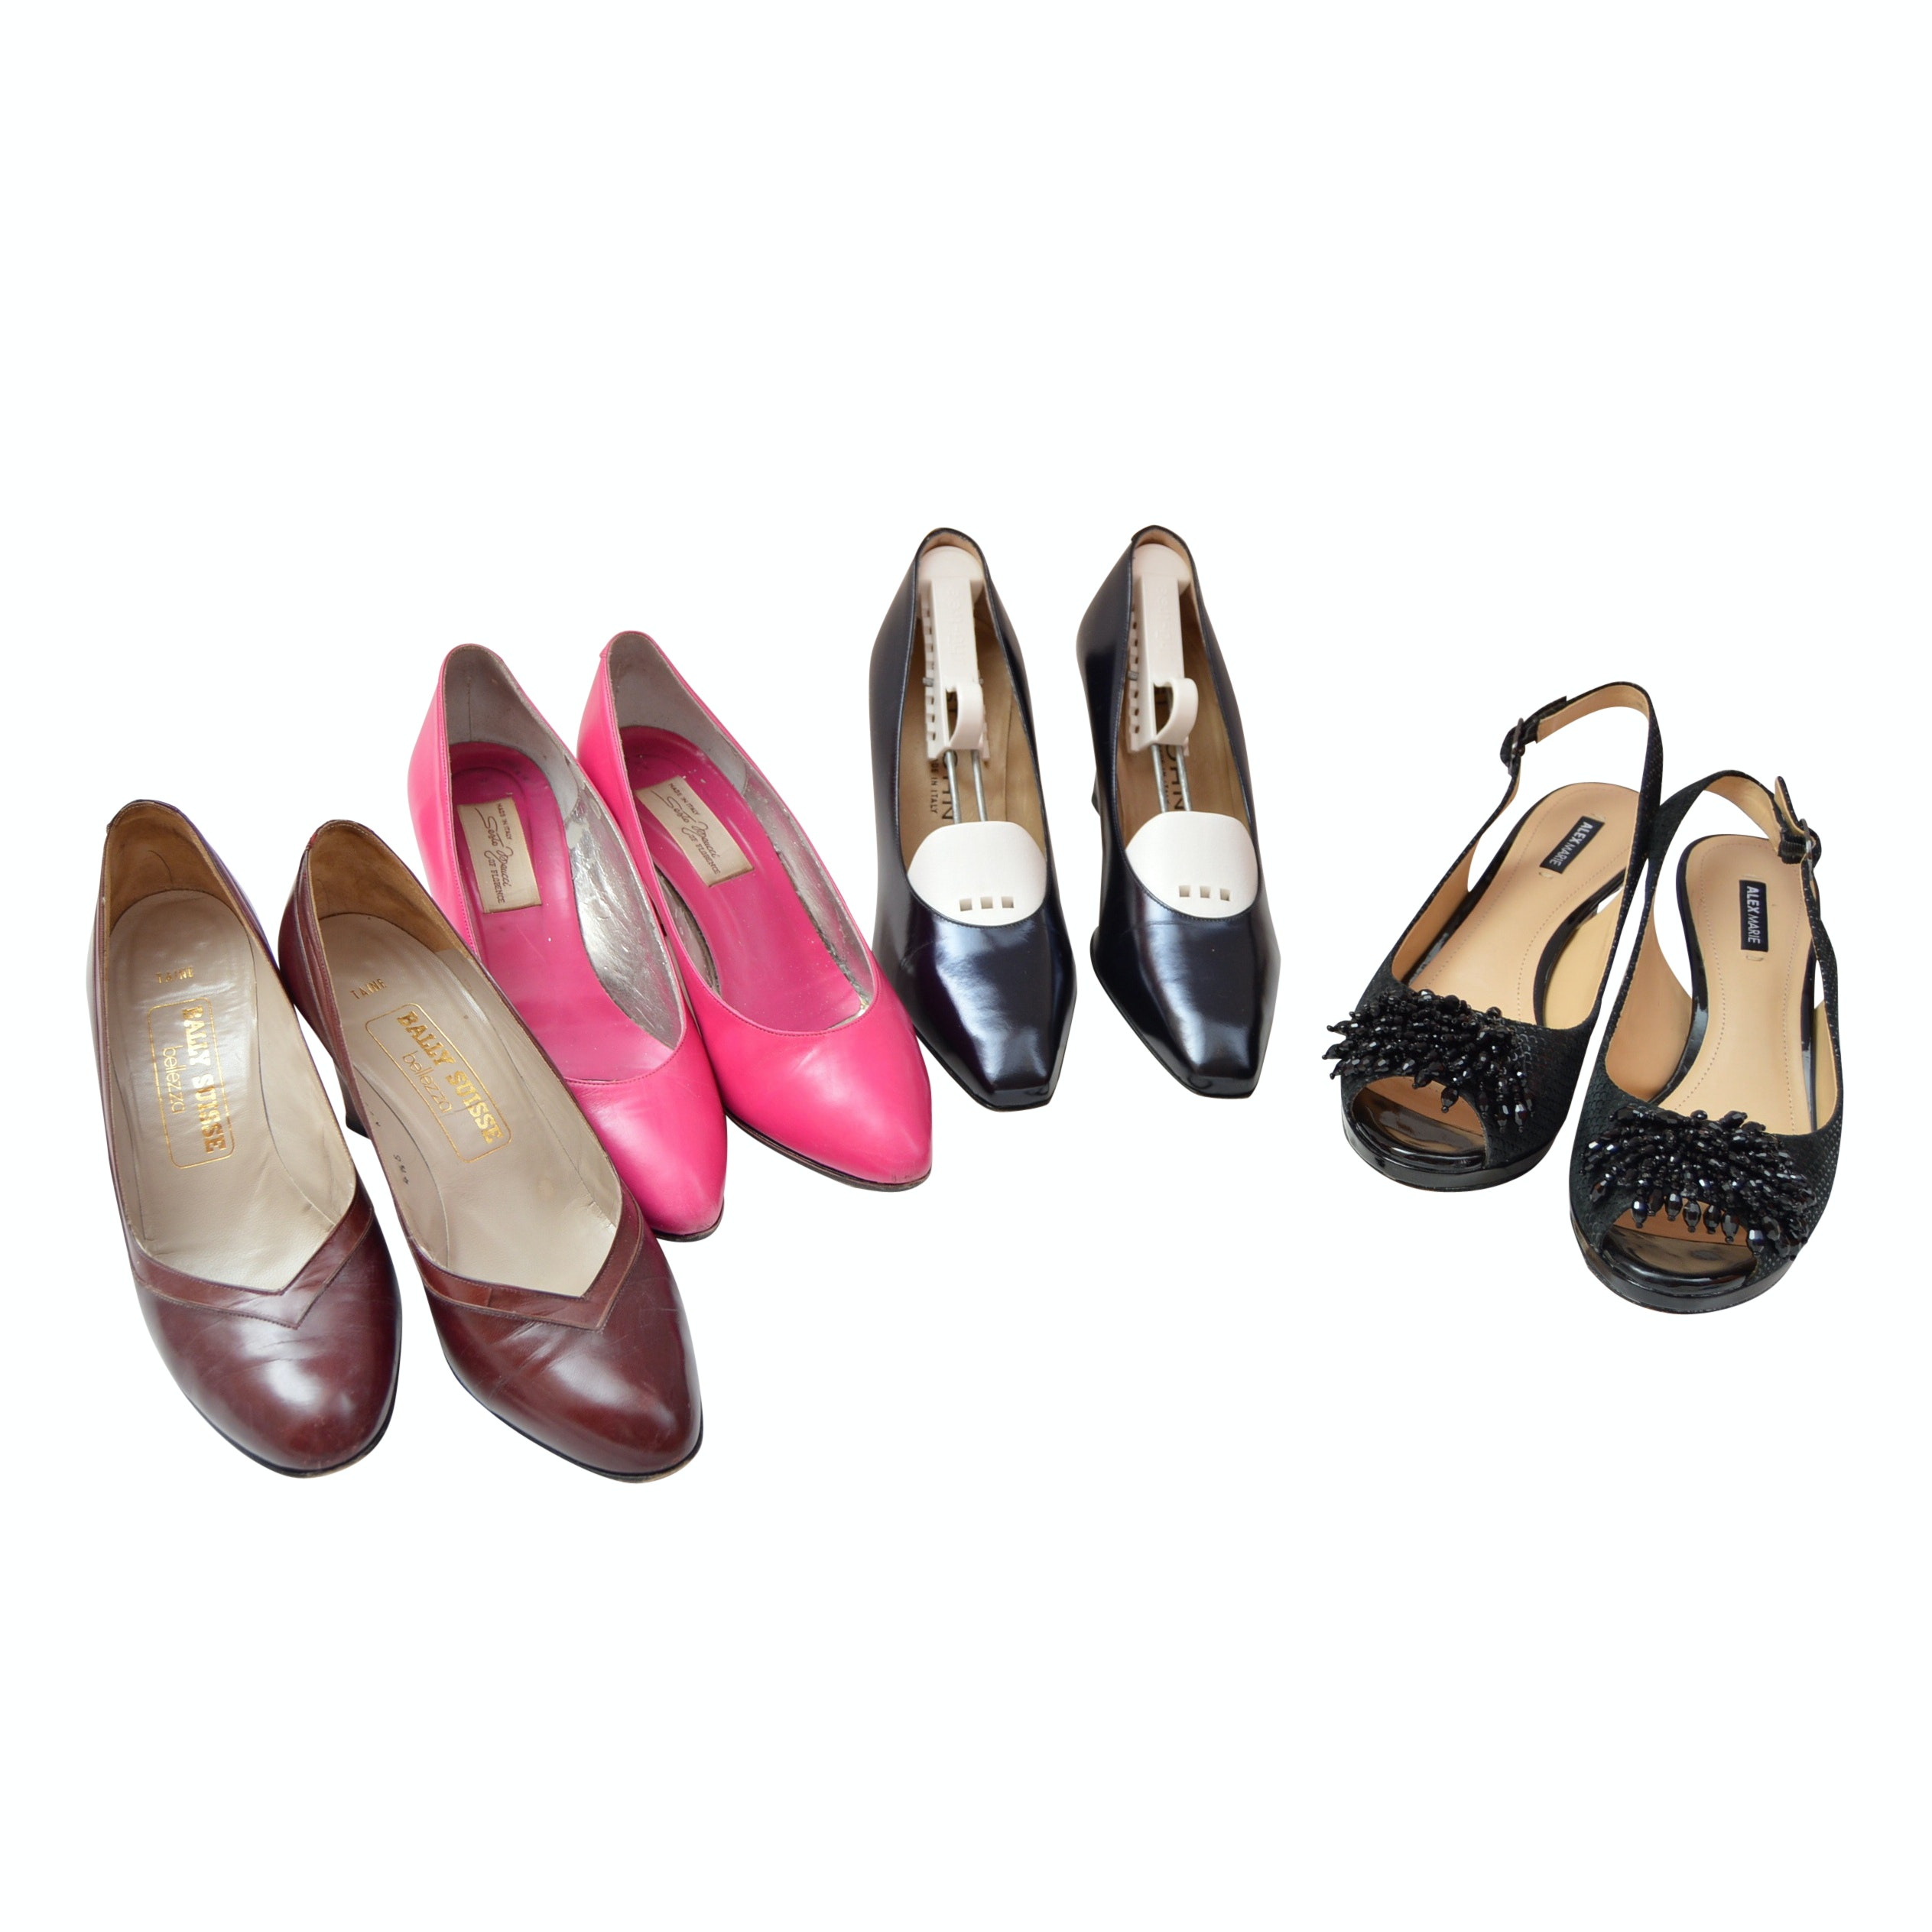 Women's Designer Leather Shoes including St. John and Bally